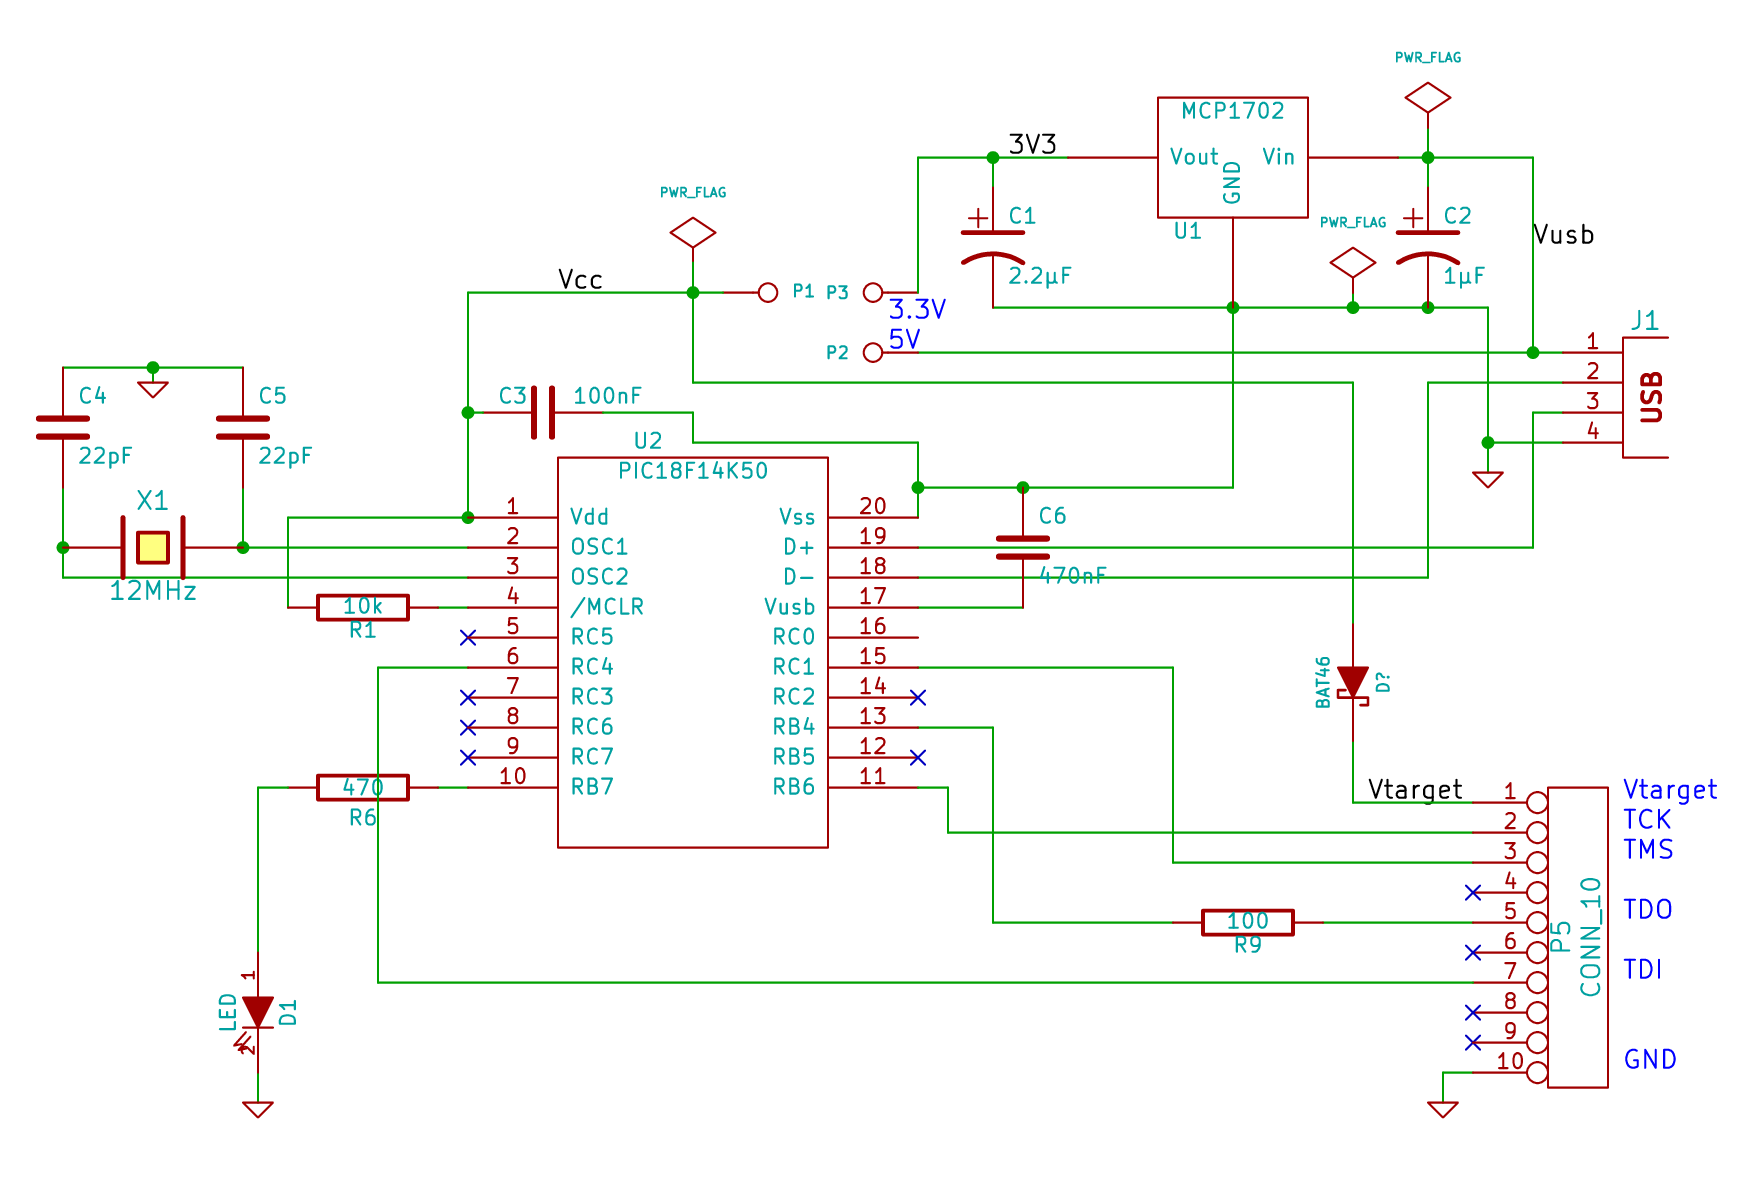 schematic_USB_Blaster_clone Usb Rca Wiring Schematic on usb power schematic, usb 2.0 schematic, micro usb schematic, usb keyboard schematic, usb circuit schematic, usb wire, mini usb schematic, usb schematic symbol, usb switch schematic, usb controller schematic, usb splitter schematic, usb to serial cable pinout, usb to ethernet cable pinout, usb port schematic, usb charger schematic, ps2 to usb schematic, wireless mouse schematic, usb diagram, usb pin out schematic, usb cable schematic,